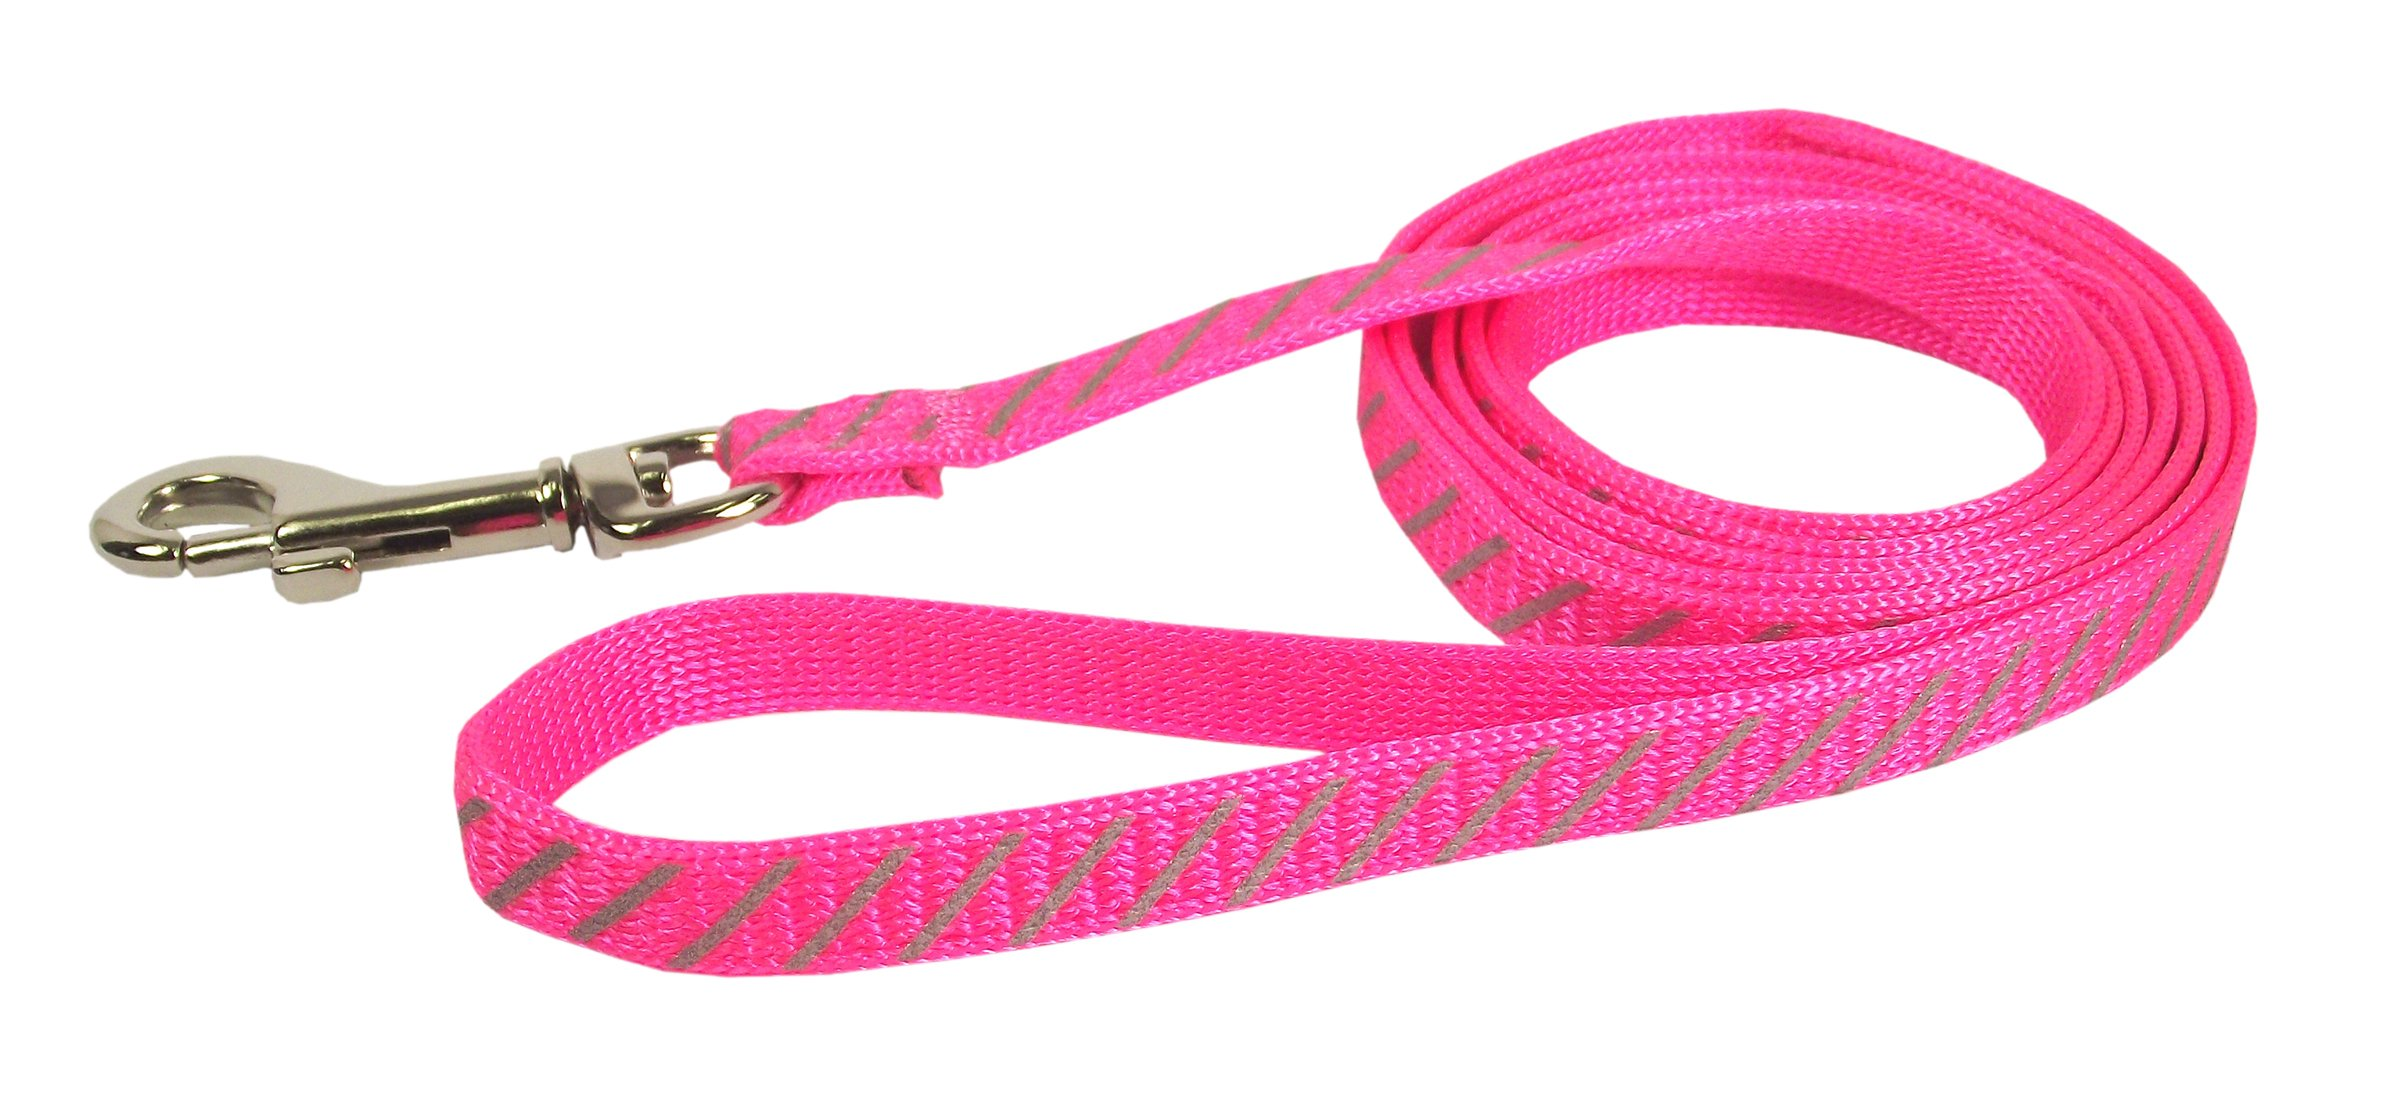 Hamilton Reflective Snag Proof Braided Cat Lead, 3/8-Inch by 4-Feet, Hot Pink by Hamilton (Image #1)